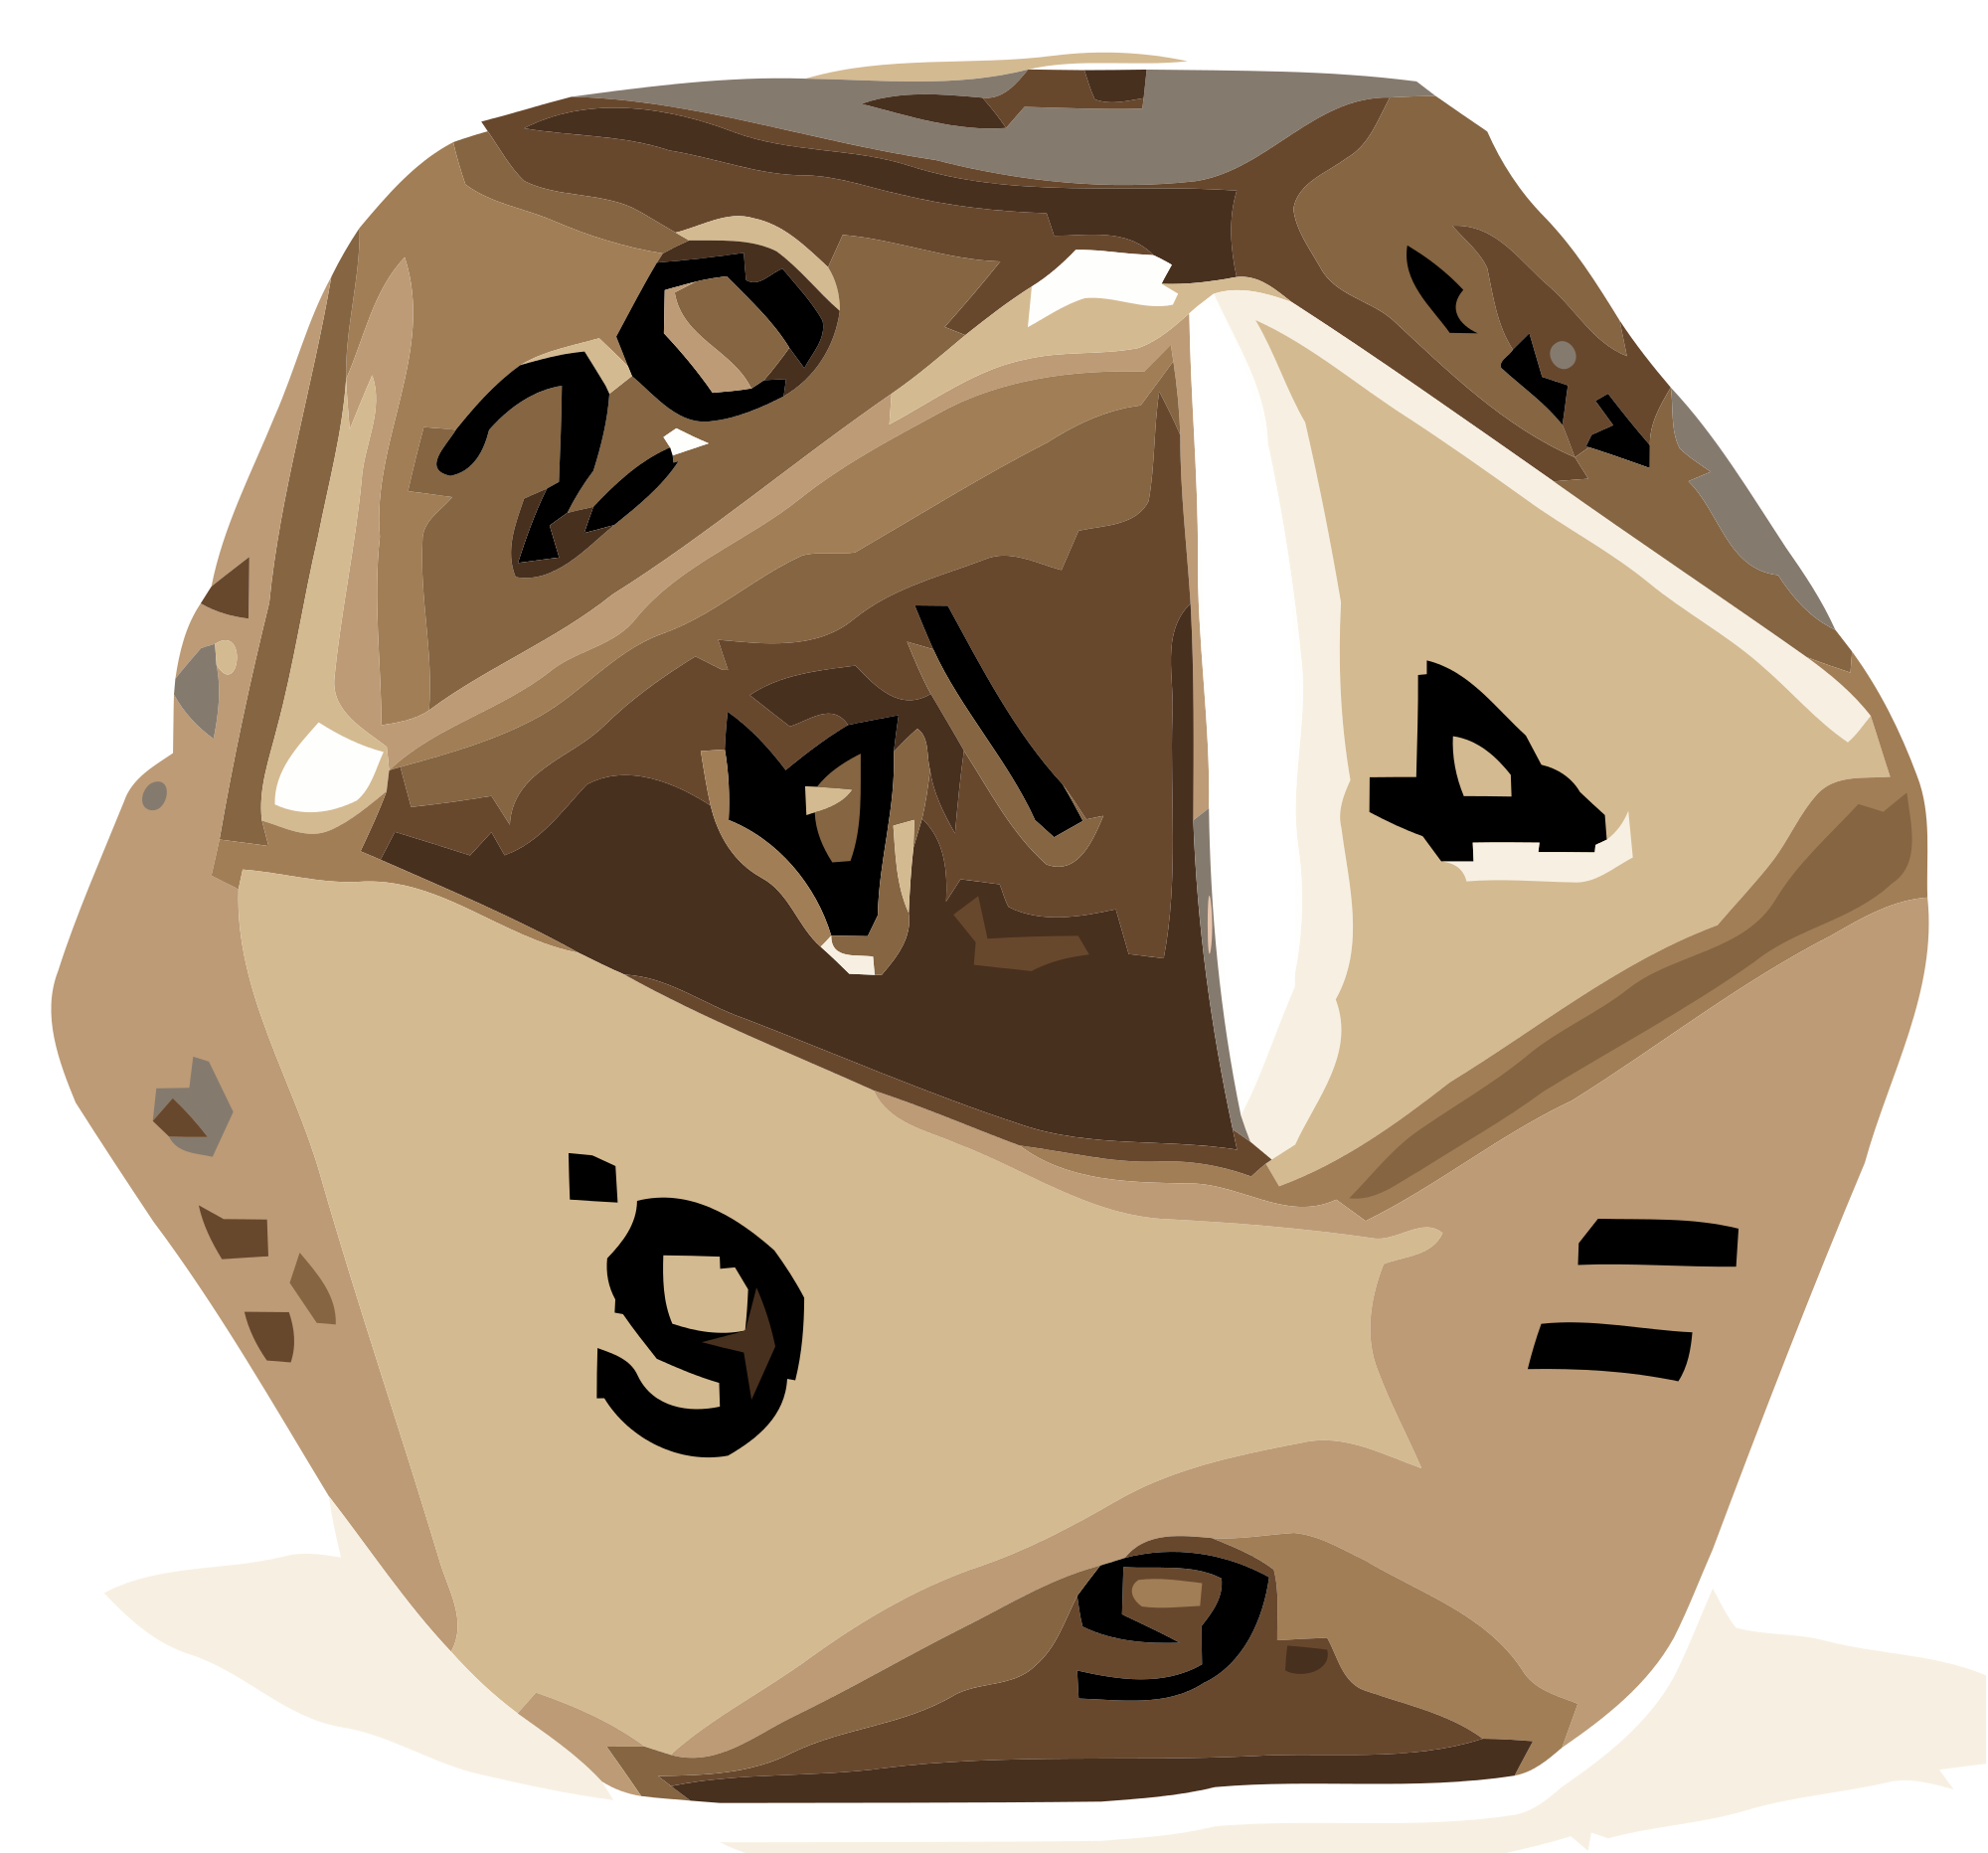 20 Sided Dice Vector